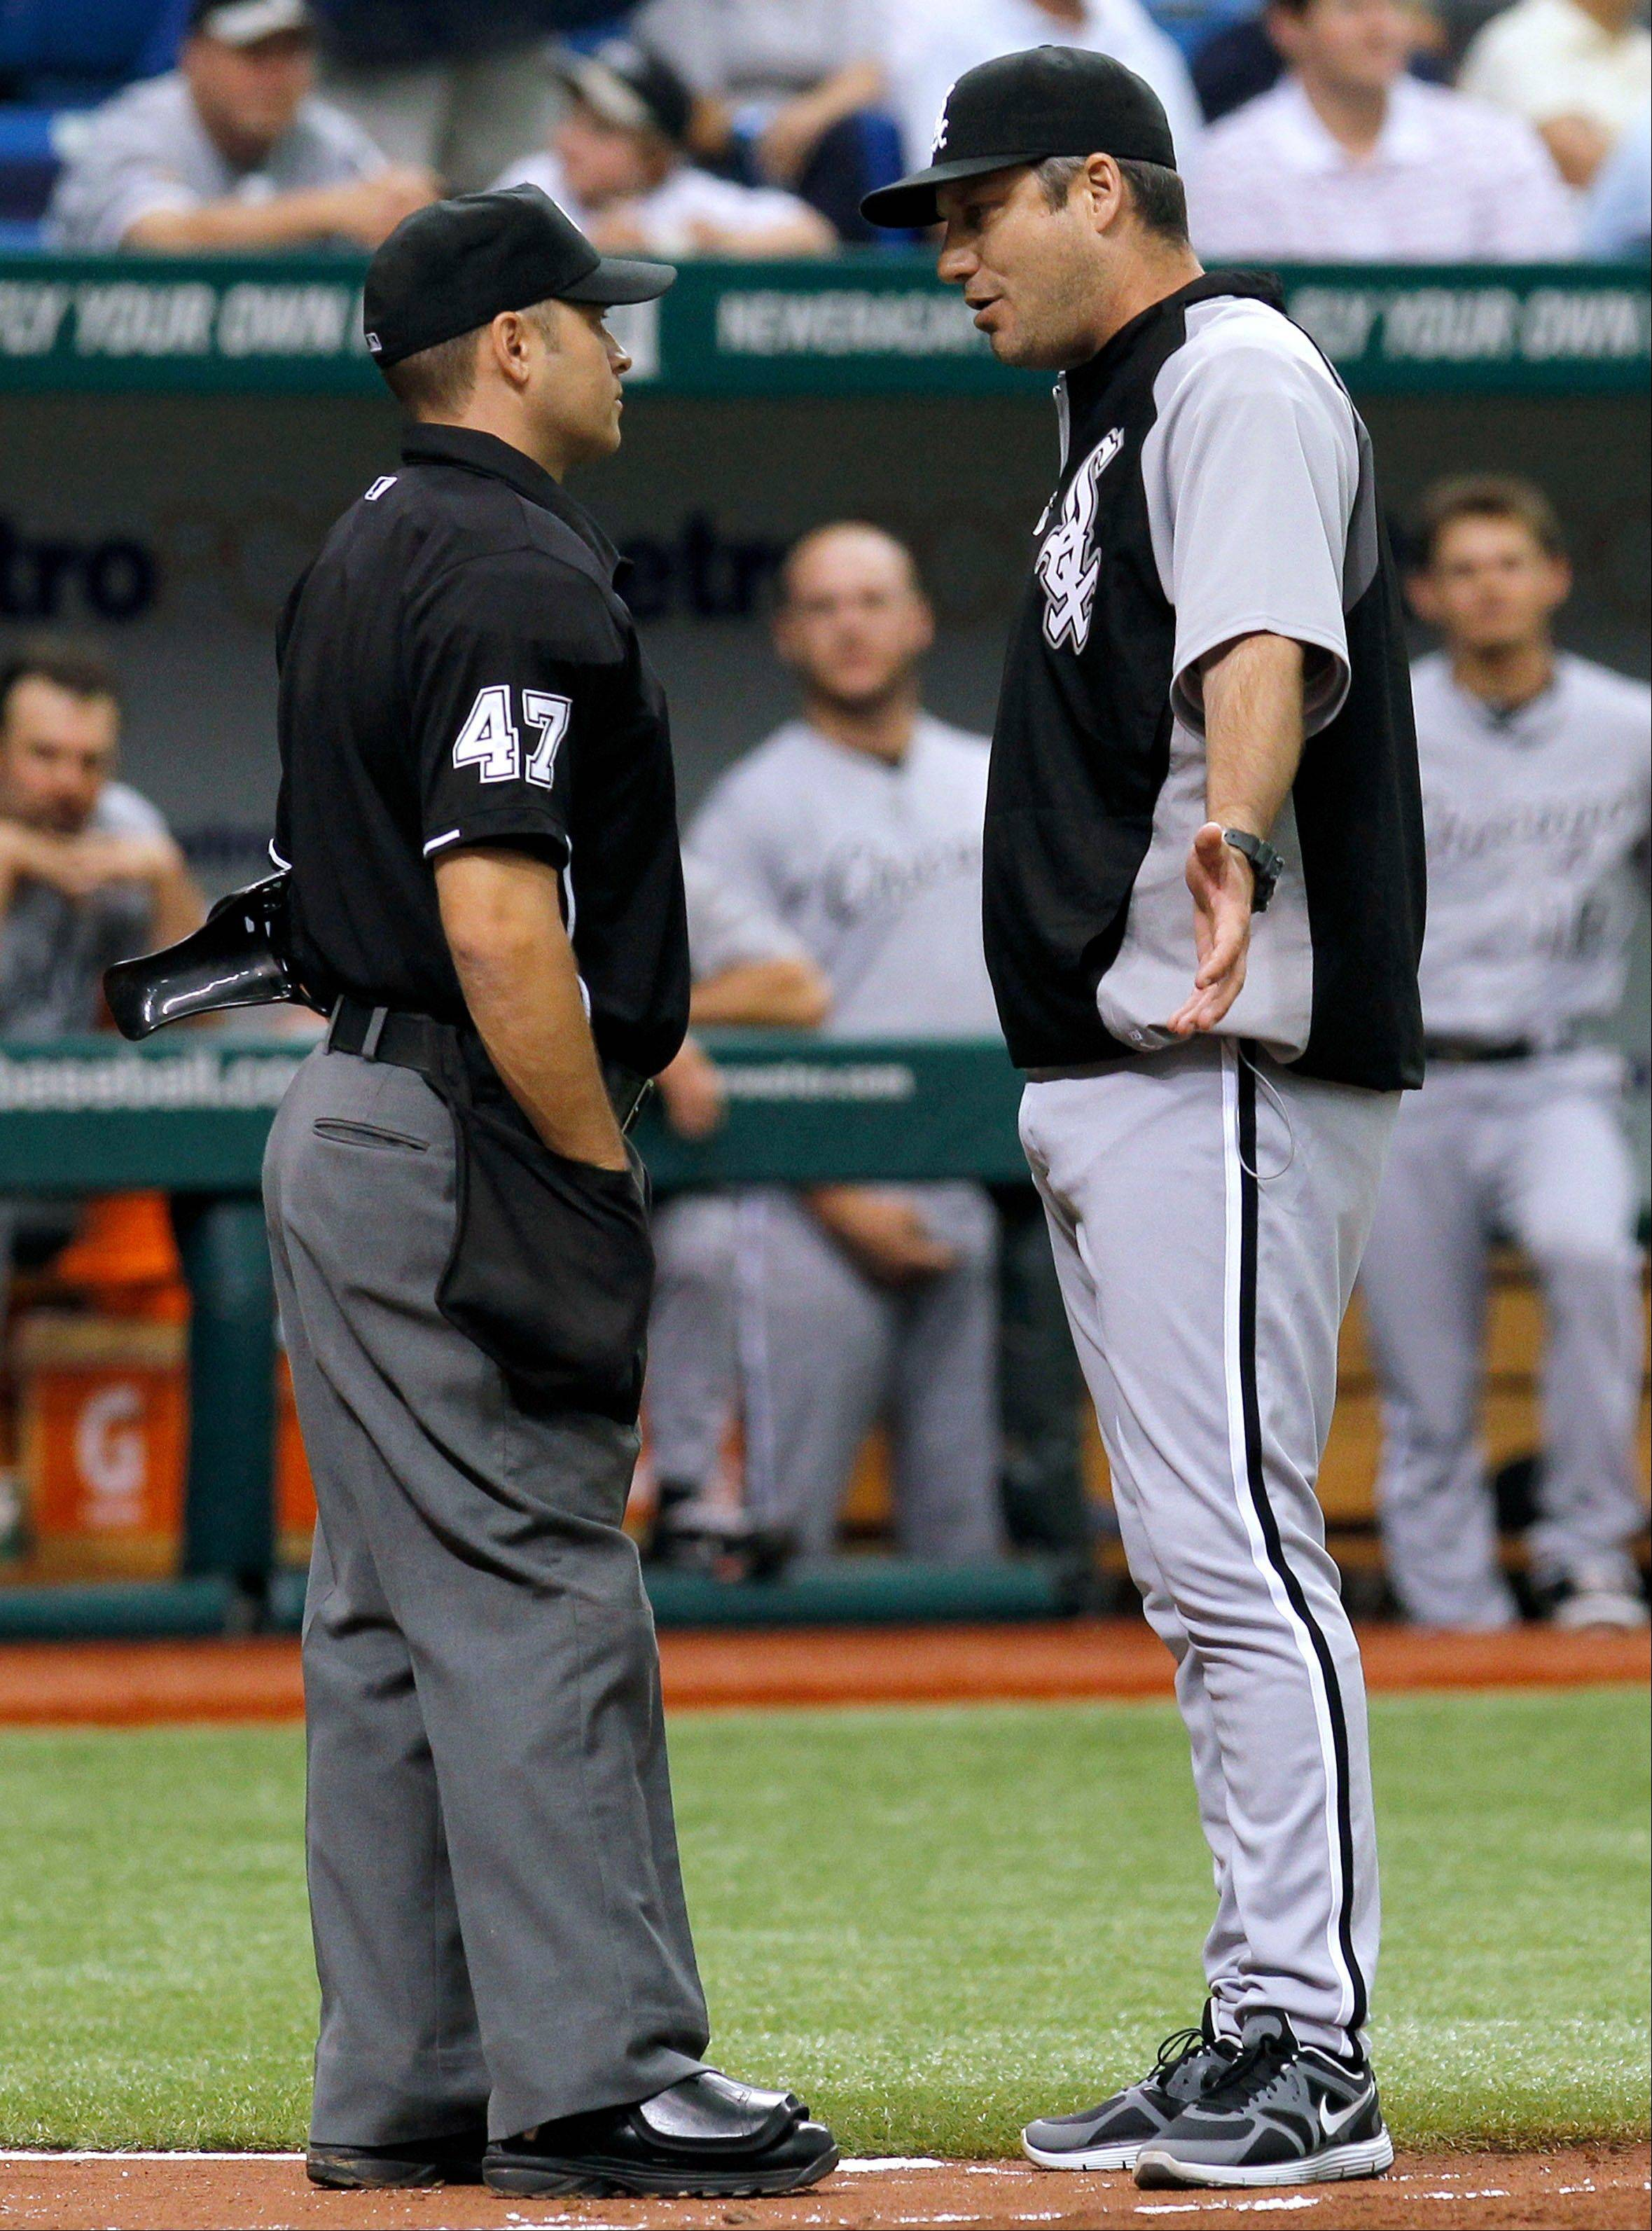 White Sox manager Robin Ventura argues with home plate umpire Mark Wegner after White Sox pitcher Jose Quintana was ejected for throwing behind Tampa Bay Rays' Ben Zobrist Wednesday during the fourth inning in St. Petersburg, Fla. Ventura was also ejected.